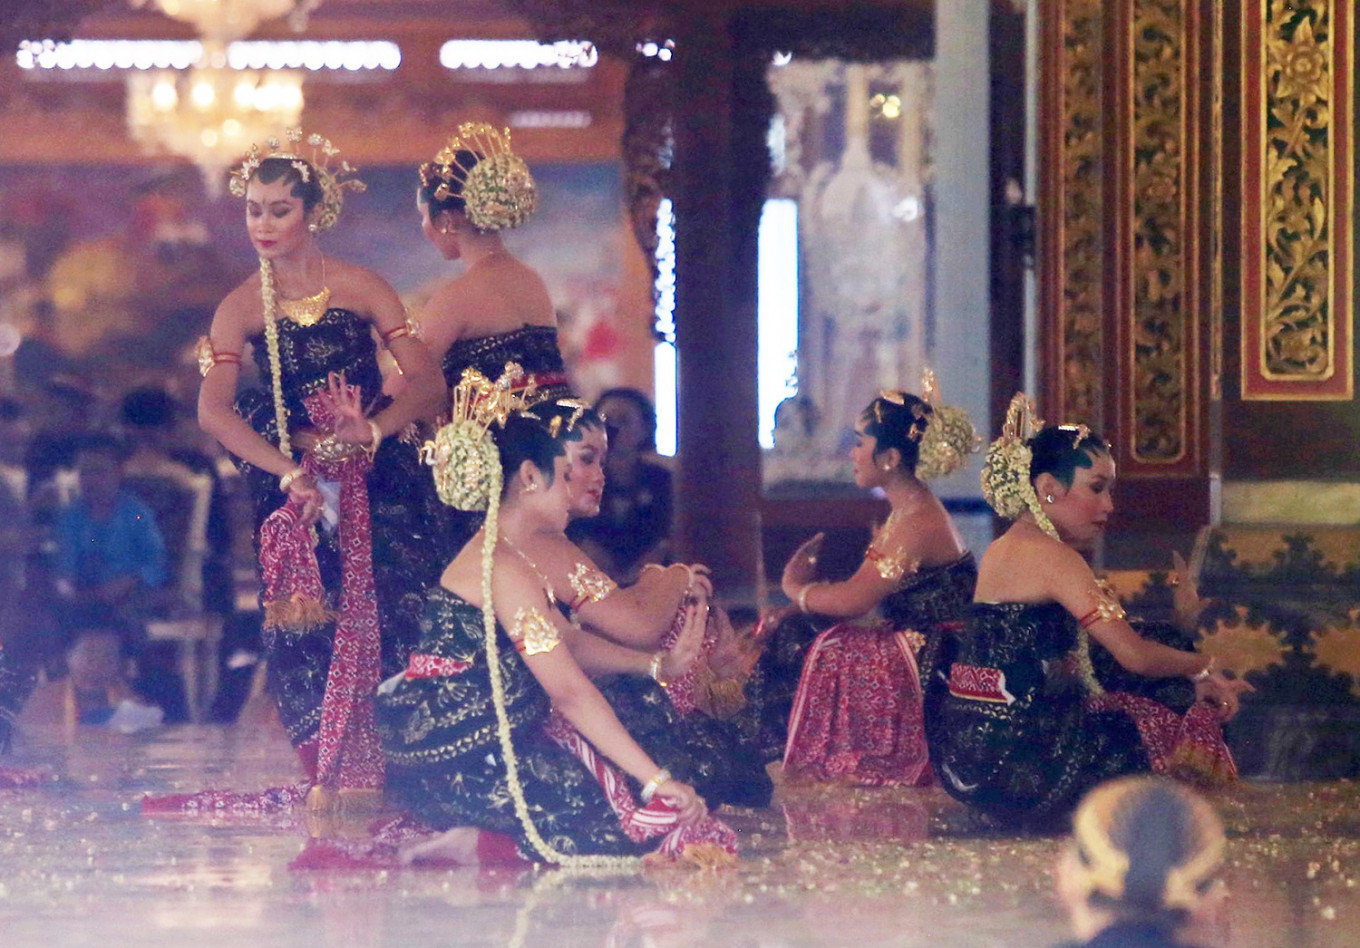 Sultan's coronation anniversary marked with sacred dance in